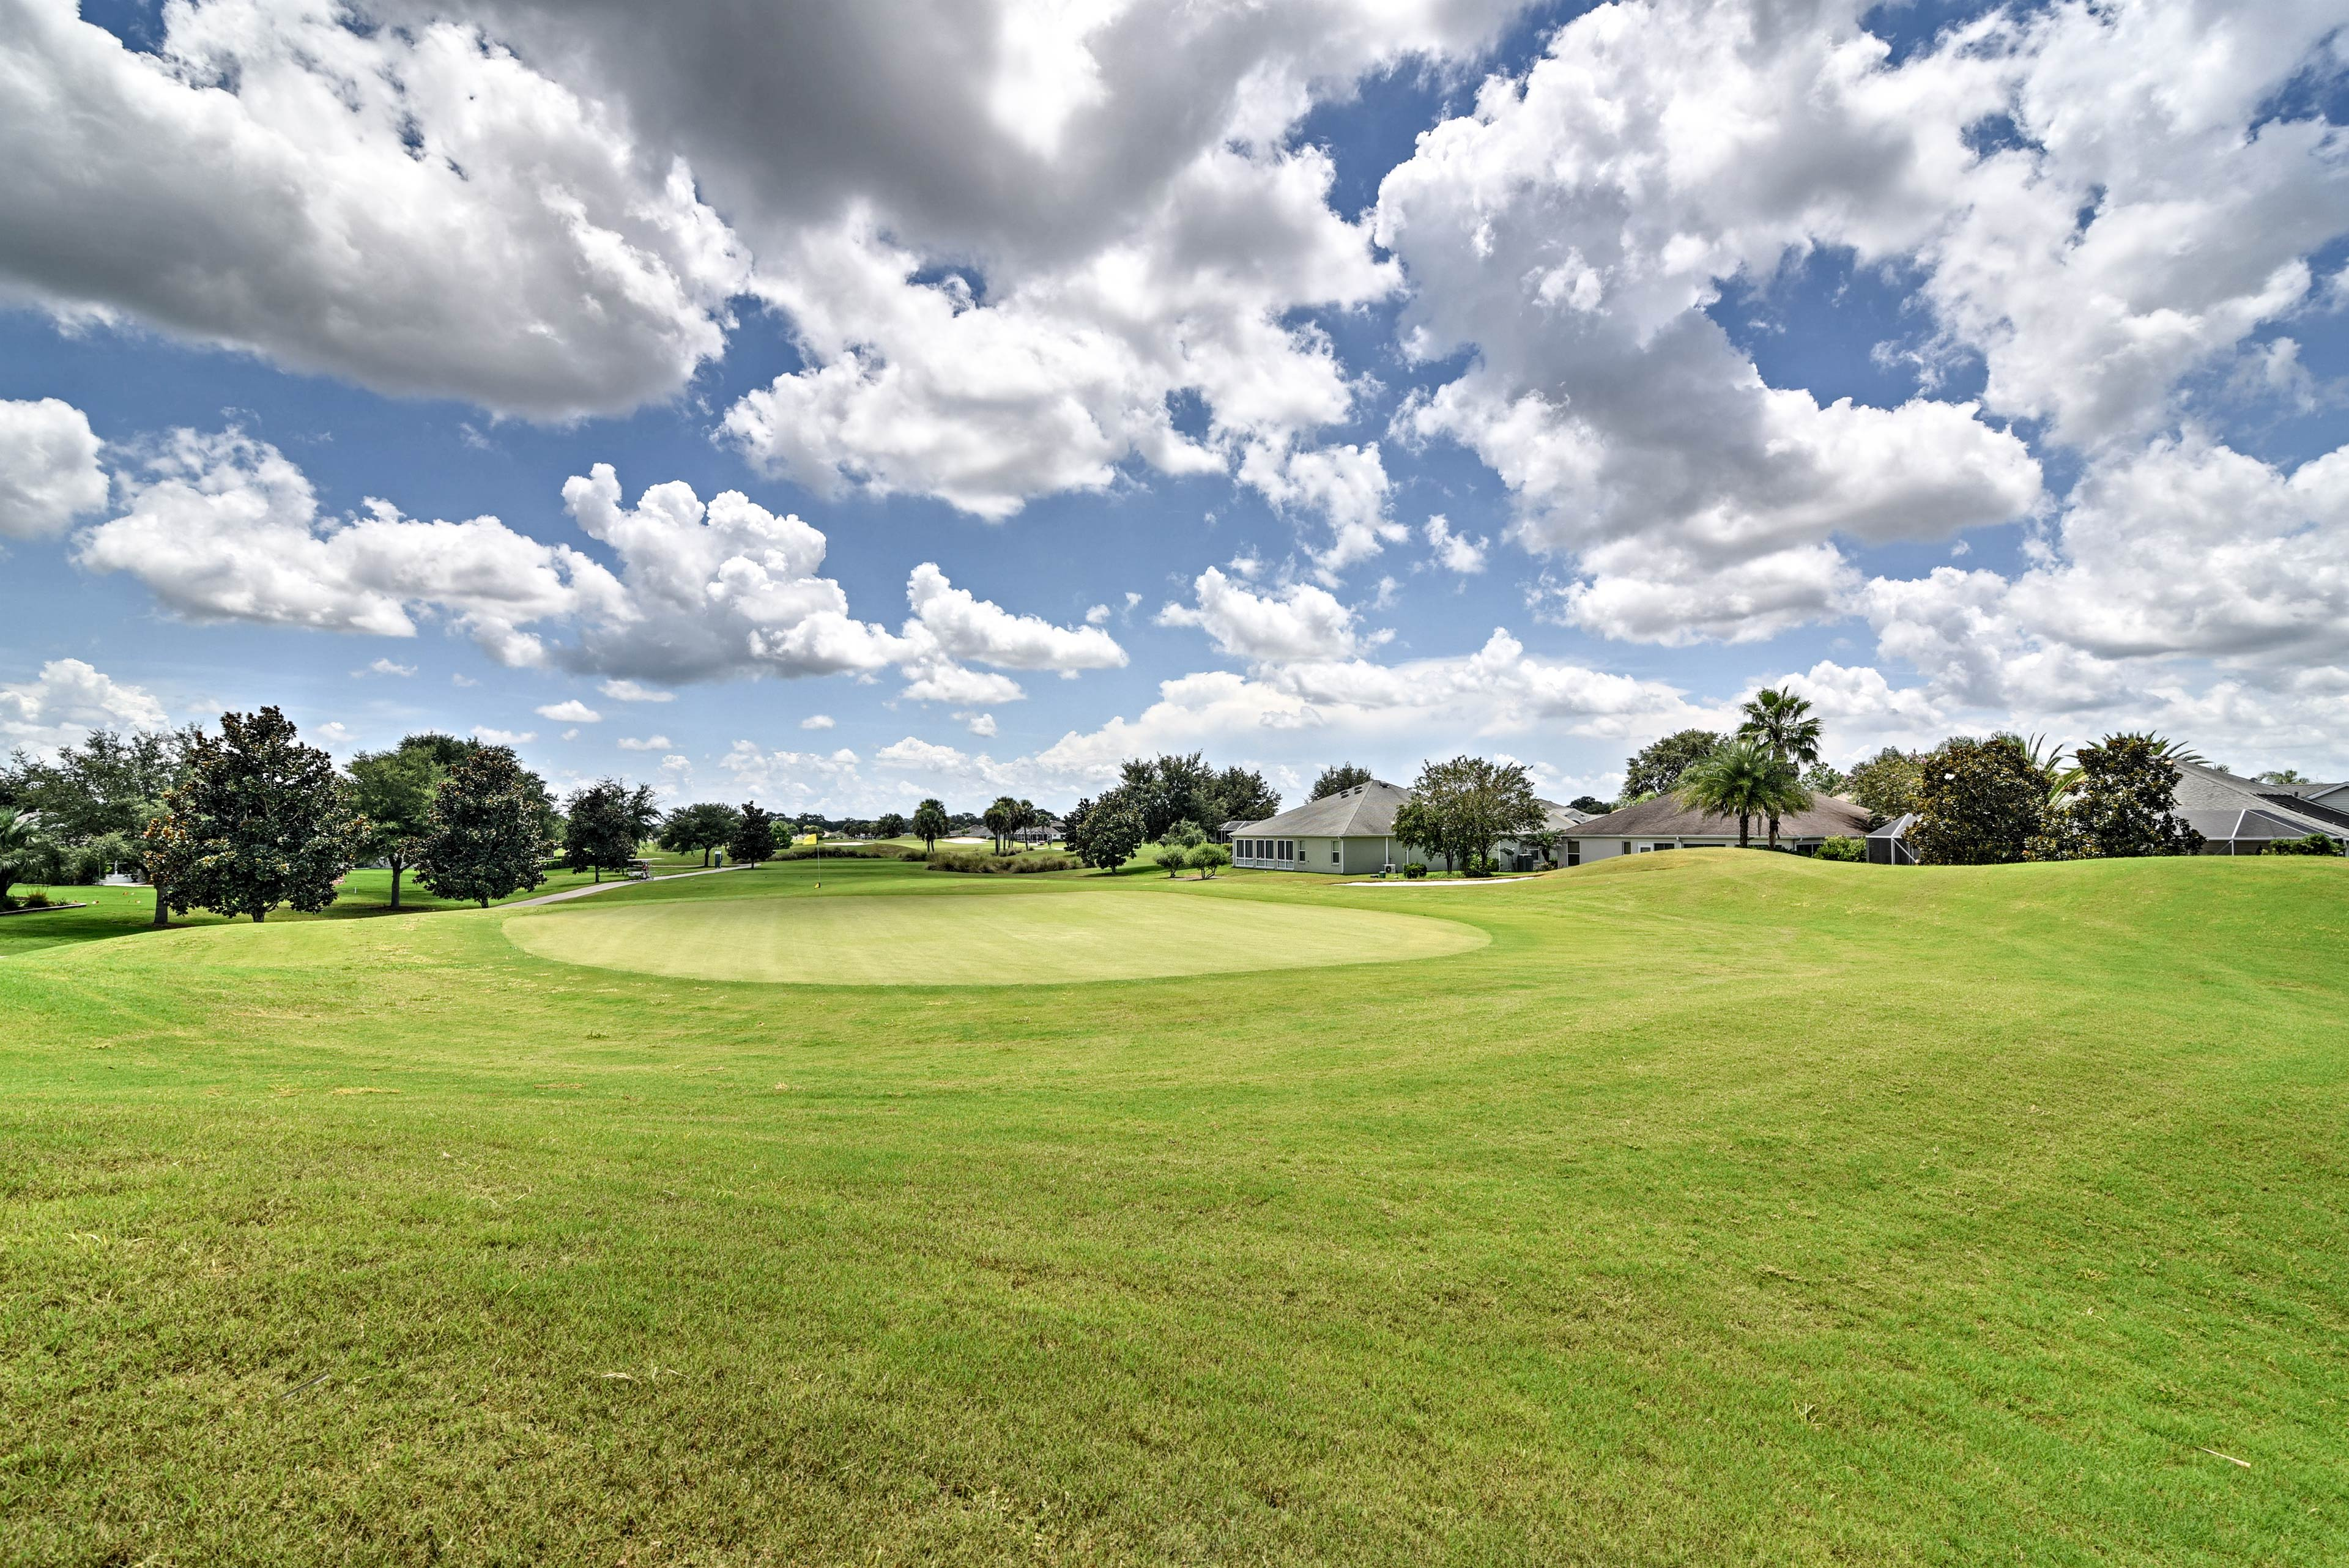 Play a round of golf at the community course!